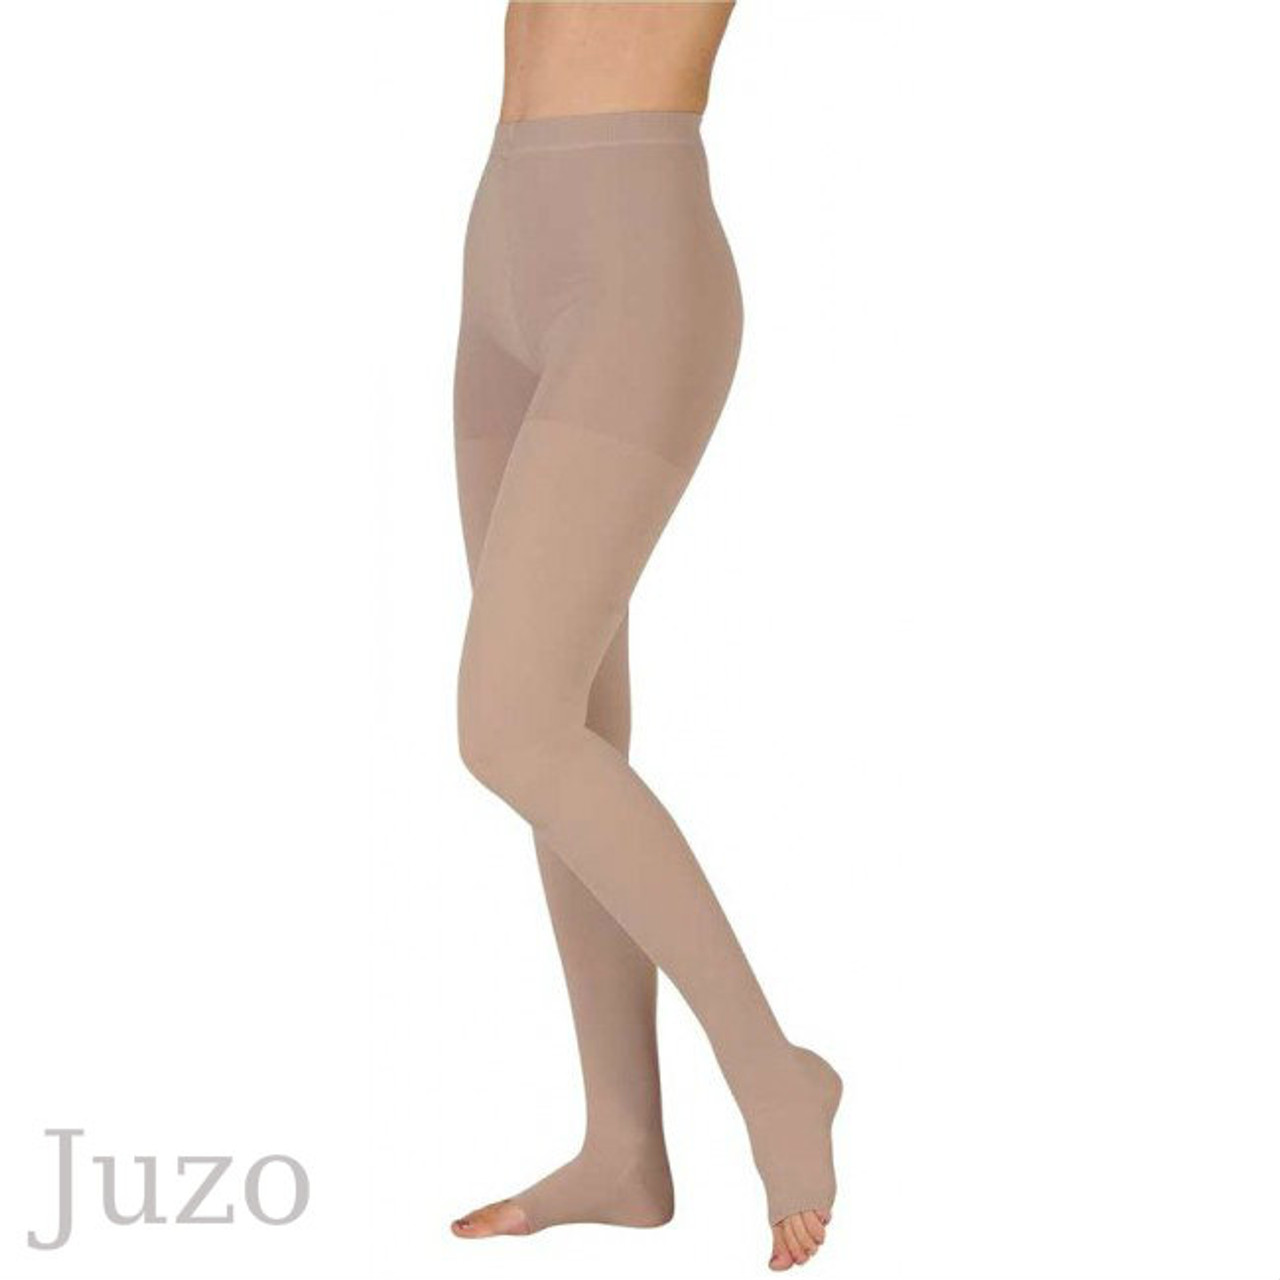 8d54b2bb76 Juzo Dynamic Cotton Pantyhose with light compressive body part - SerraNova